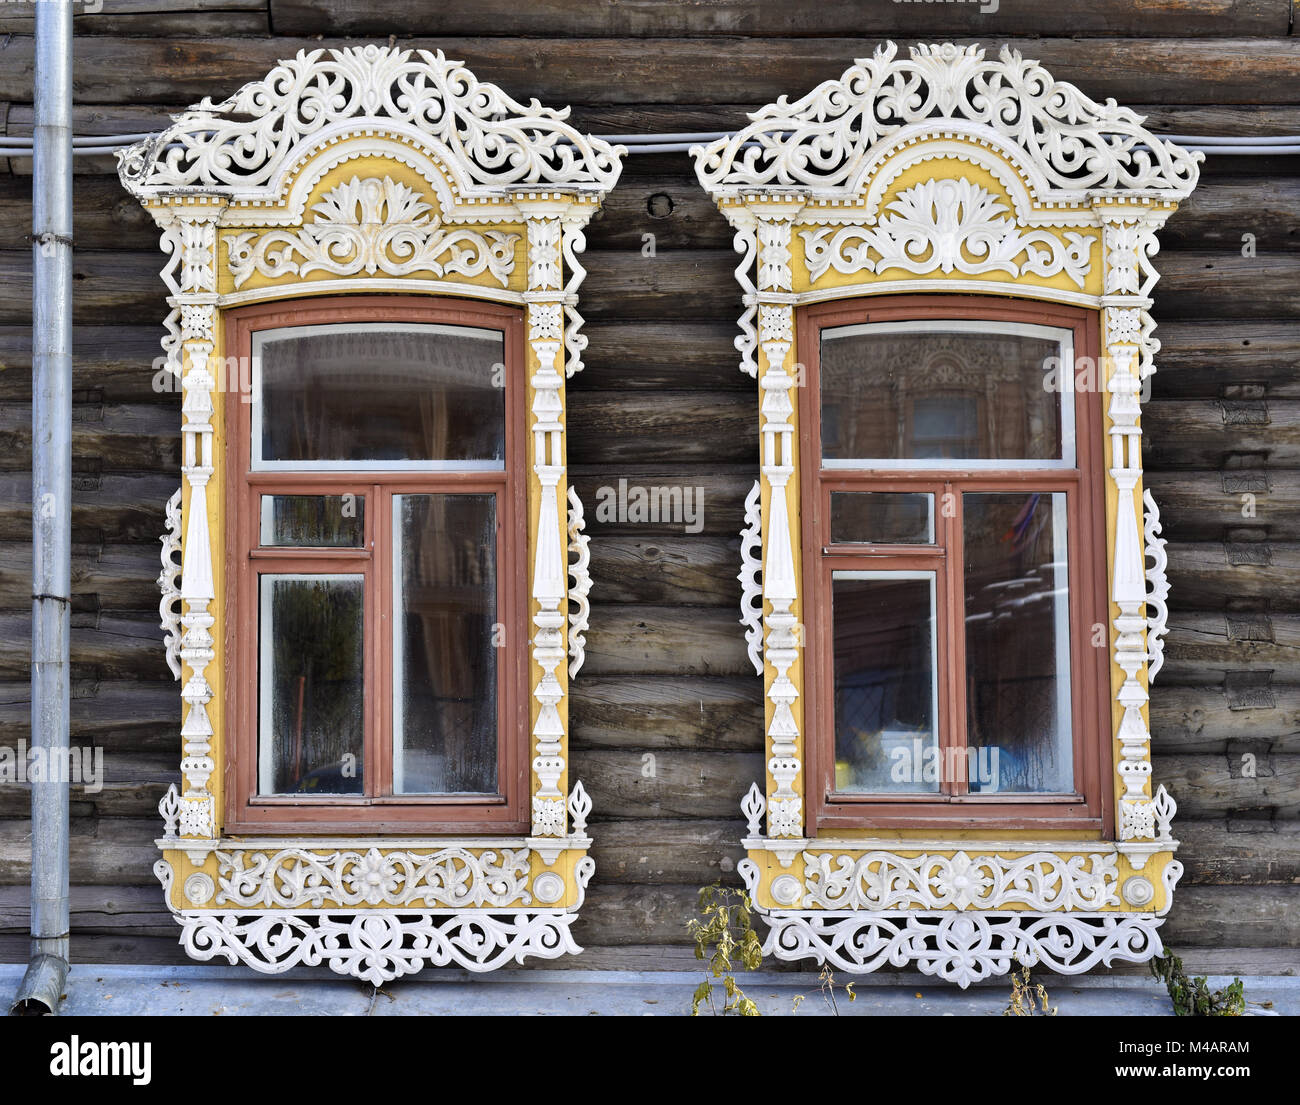 Wooden decorating of windows old residential buildings - Stock Image